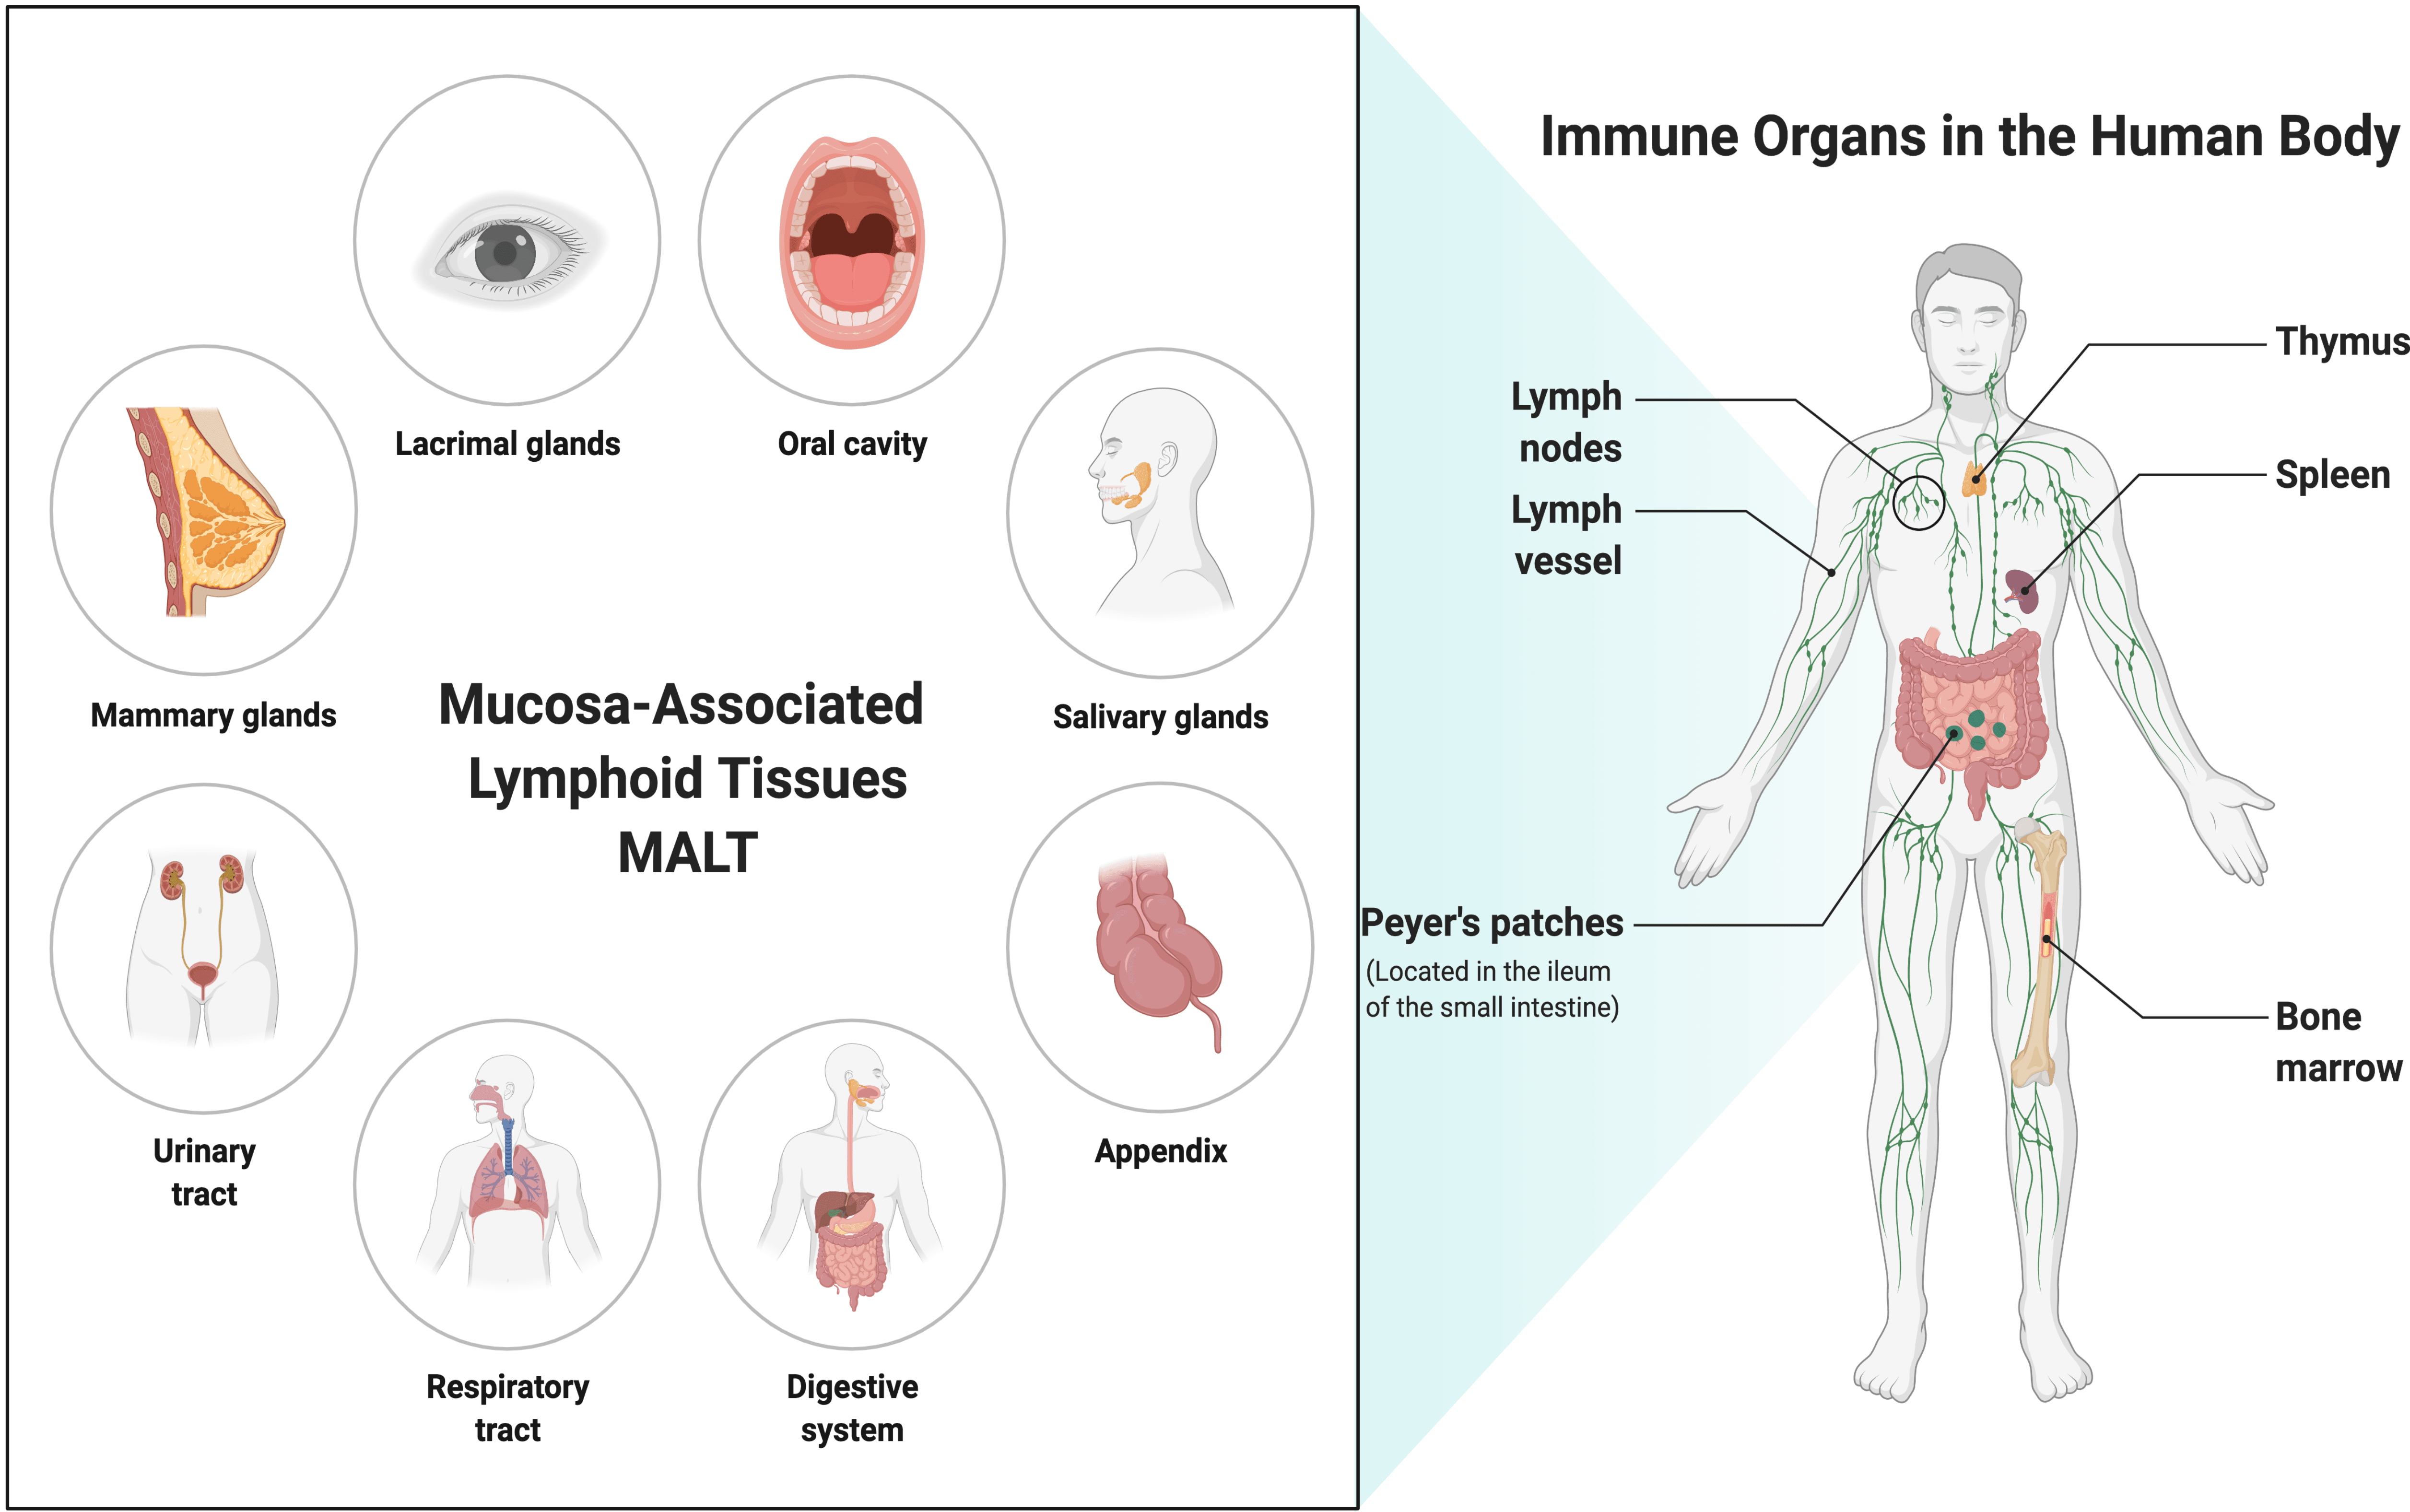 Image: Drawing of humoral immunity B-cell and cell-mediated immunity T-cell.